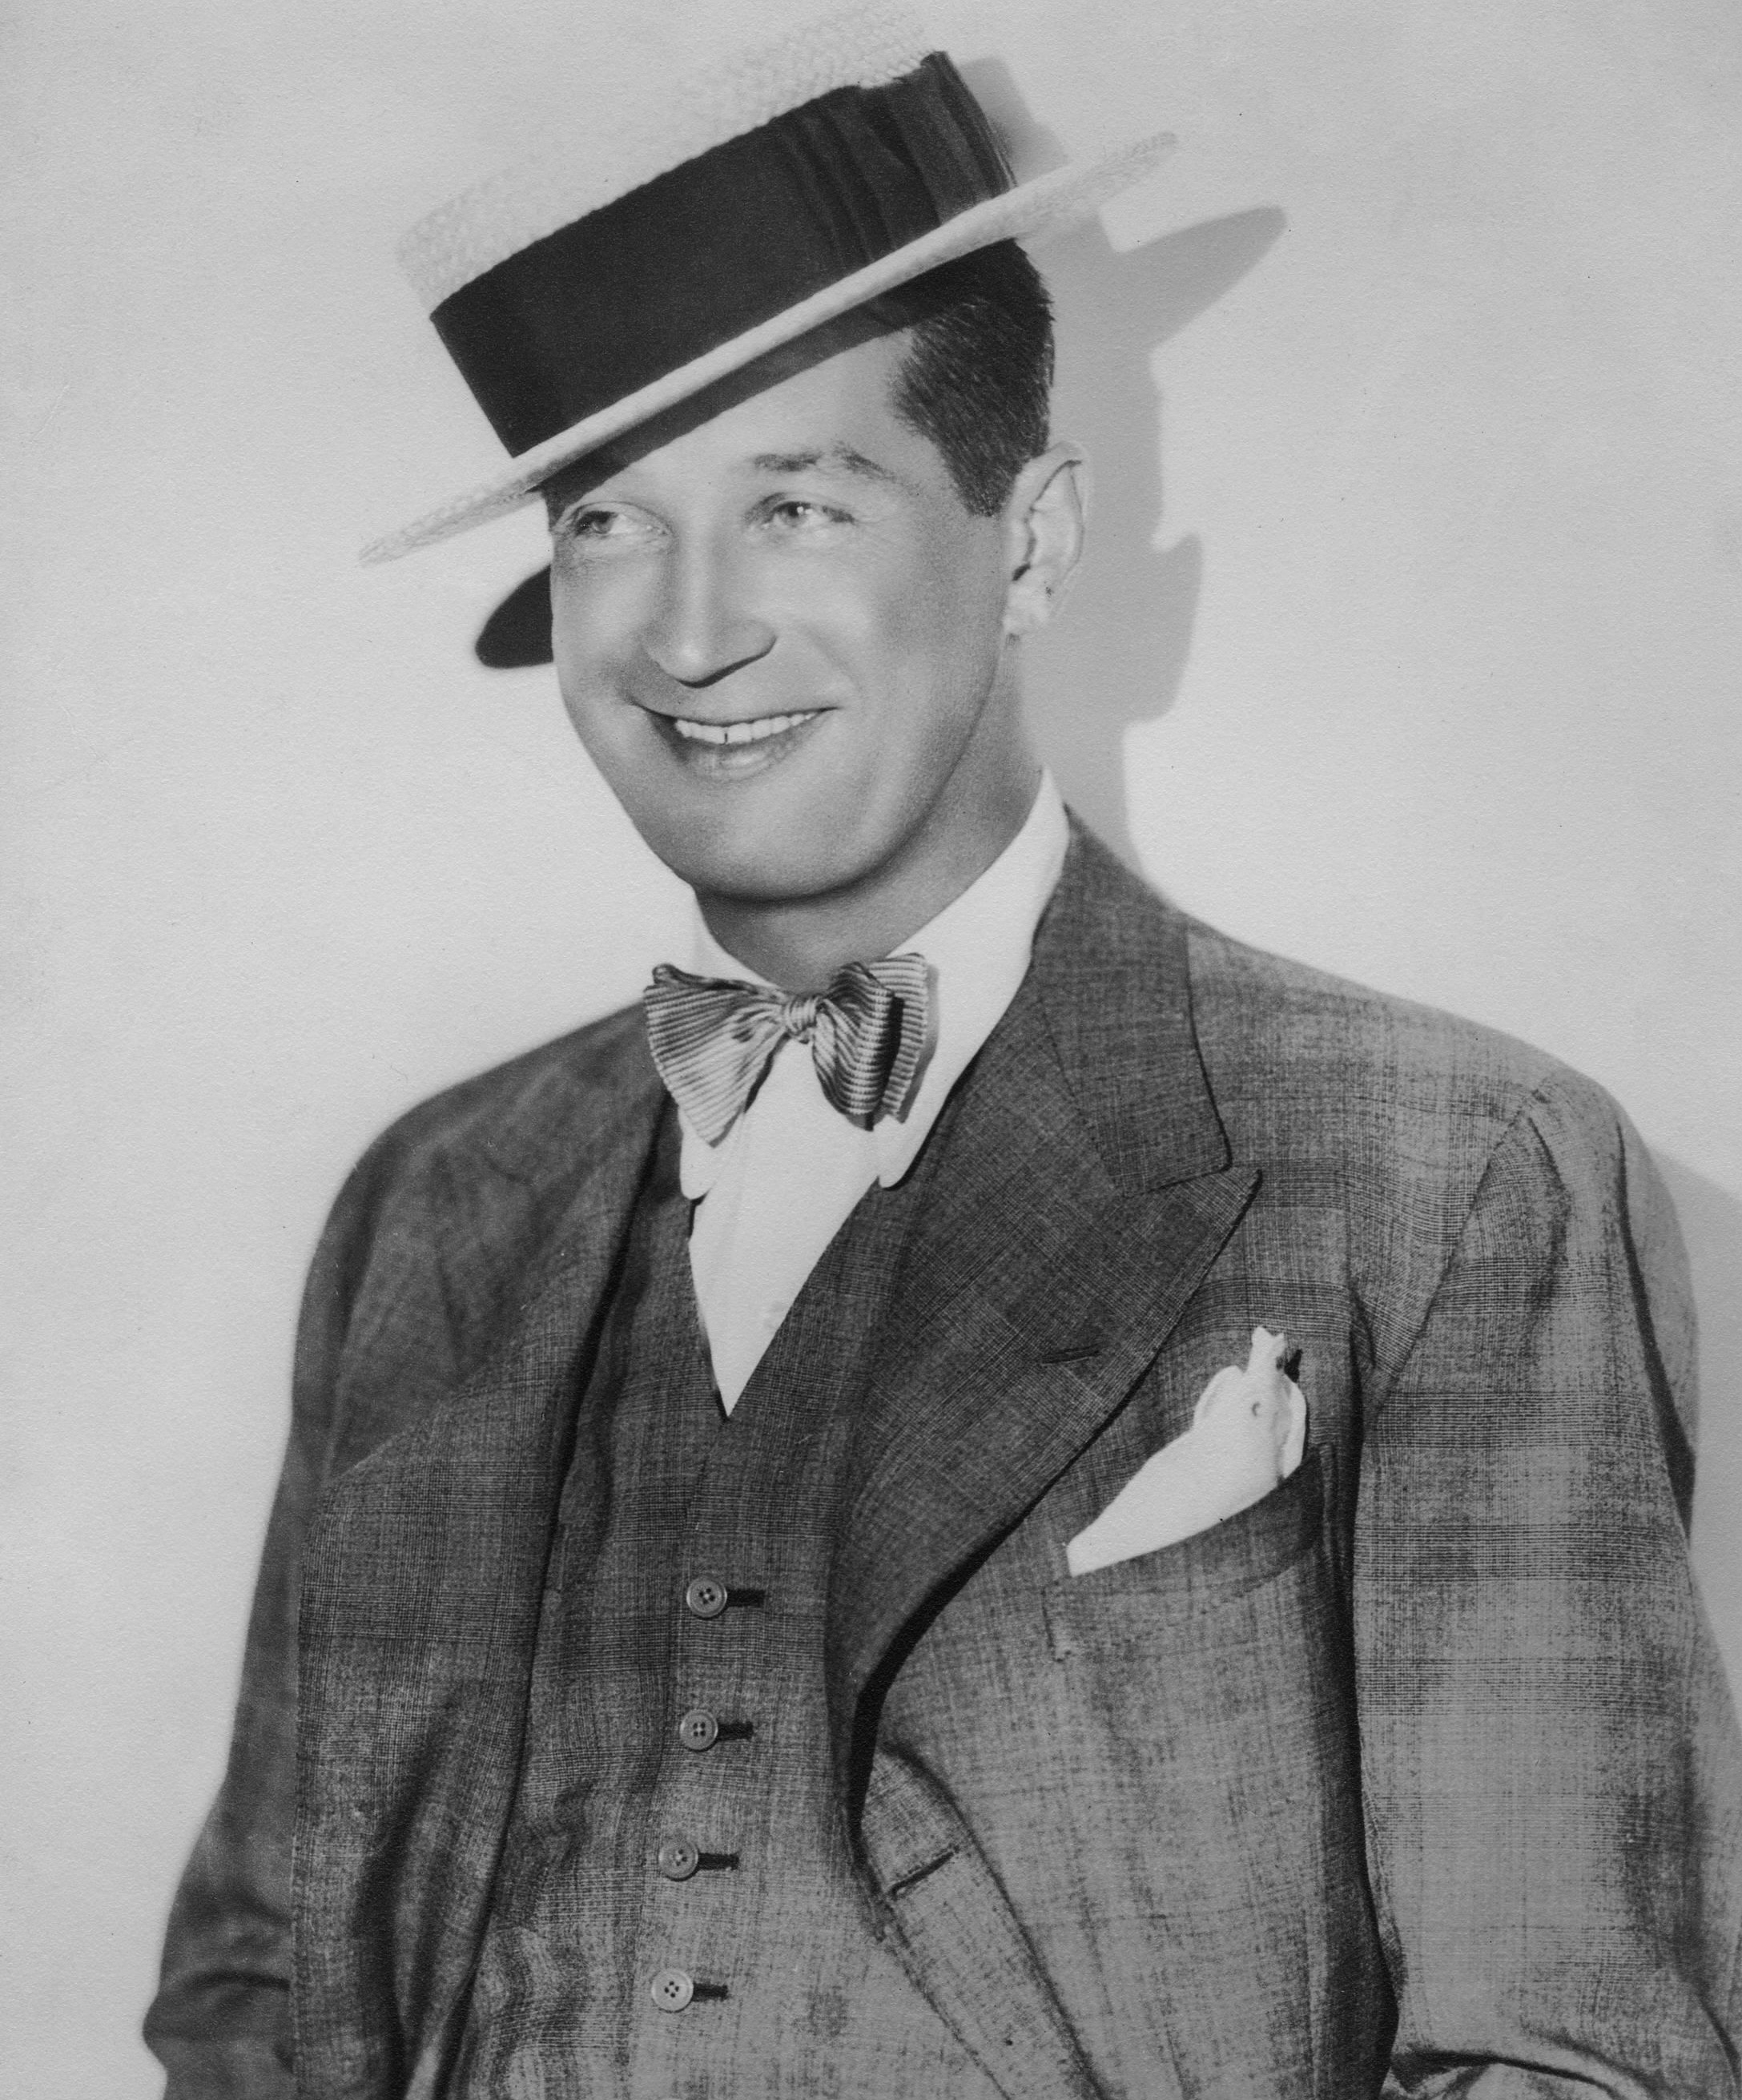 maurice chevalier biographiemaurice chevalier paris je t'aime, maurice chevalier valentine paroles, maurice chevalier discogs, maurice chevalier valentine lyrics, maurice chevalier biographie, maurice chevalier accent, maurice chevalier best, maurice chevalier youtube, maurice chevalier sweeping the clouds away, maurice chevalier valentine, maurice chevalier louise, maurice chevalier ma pomme lyrics, maurice chevalier ma poule, maurice chevalier chanteur, maurice chevalier, maurice chevalier thank heaven, maurice chevalier gigi, maurice chevalier wiki, maurice chevalier quotes, maurice chevalier wikipedia